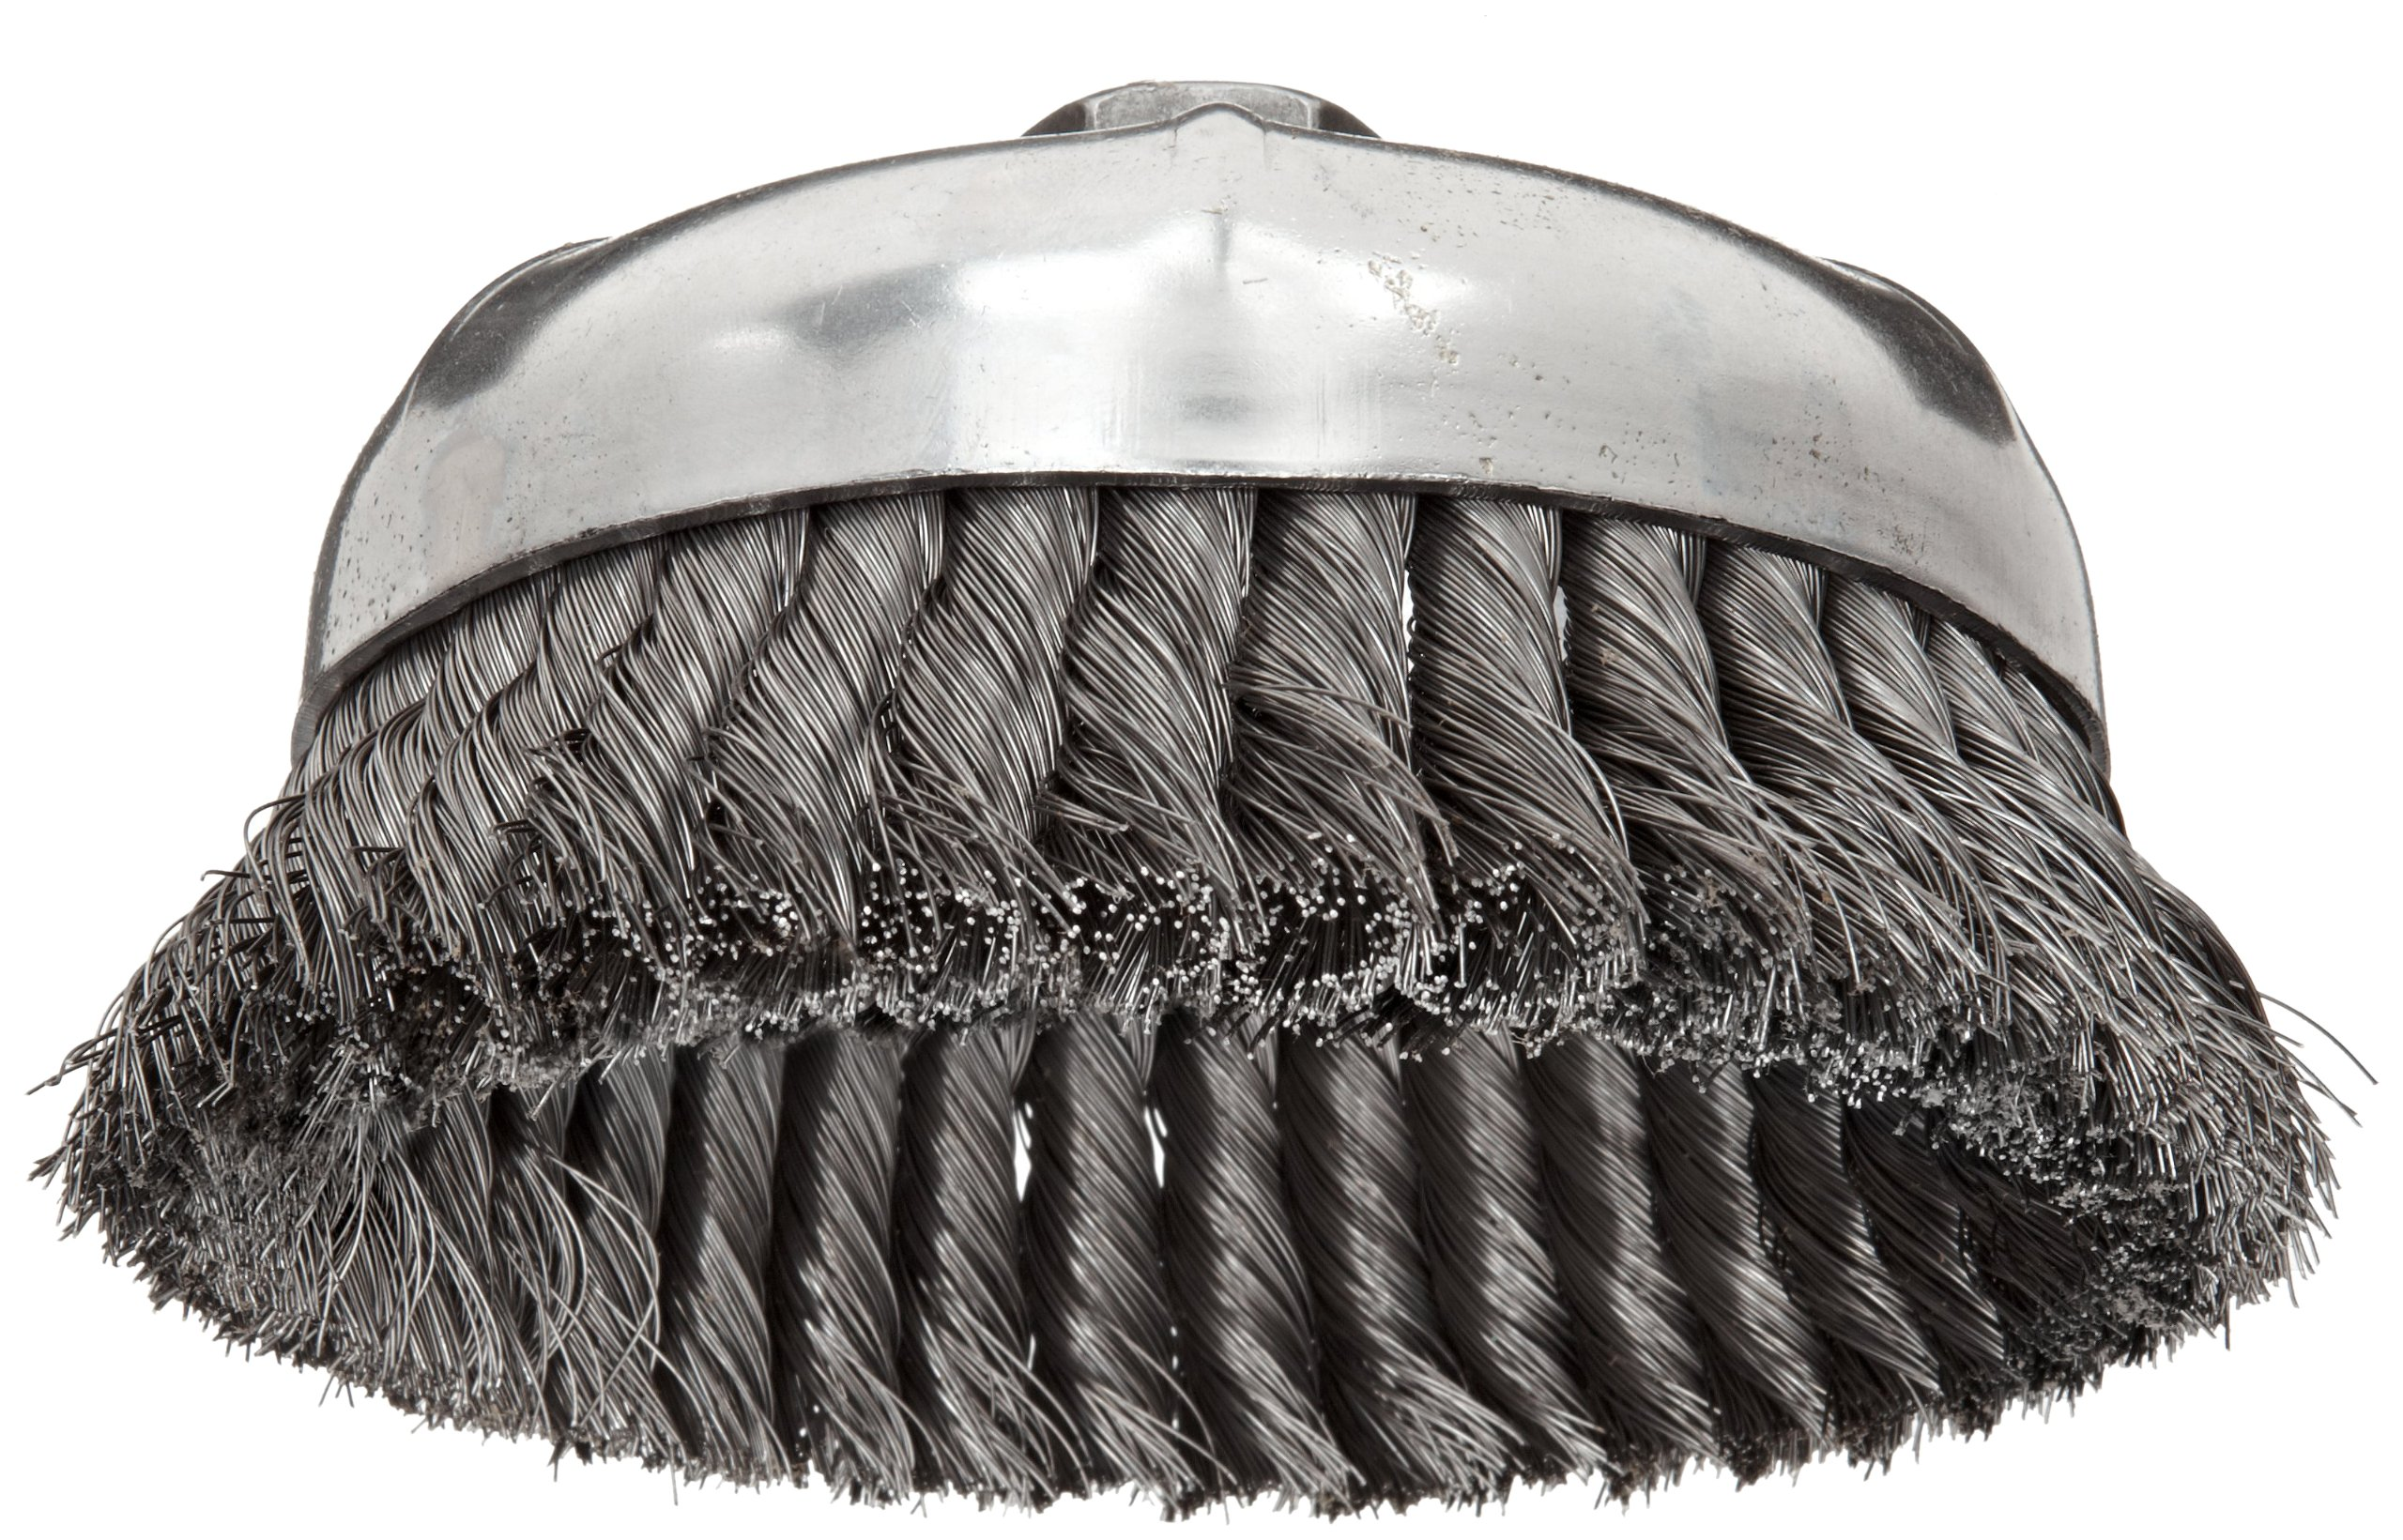 "Weiler 12356 Wire Cup Brush, Threaded Hole, Steel, Partial Twist Knotted, Single Row, 6"" Diameter, 0.014"" Wire Diameter, 5/8""-11 Arbor, 1-3/8"" Bristle Length, 6600 rpm"